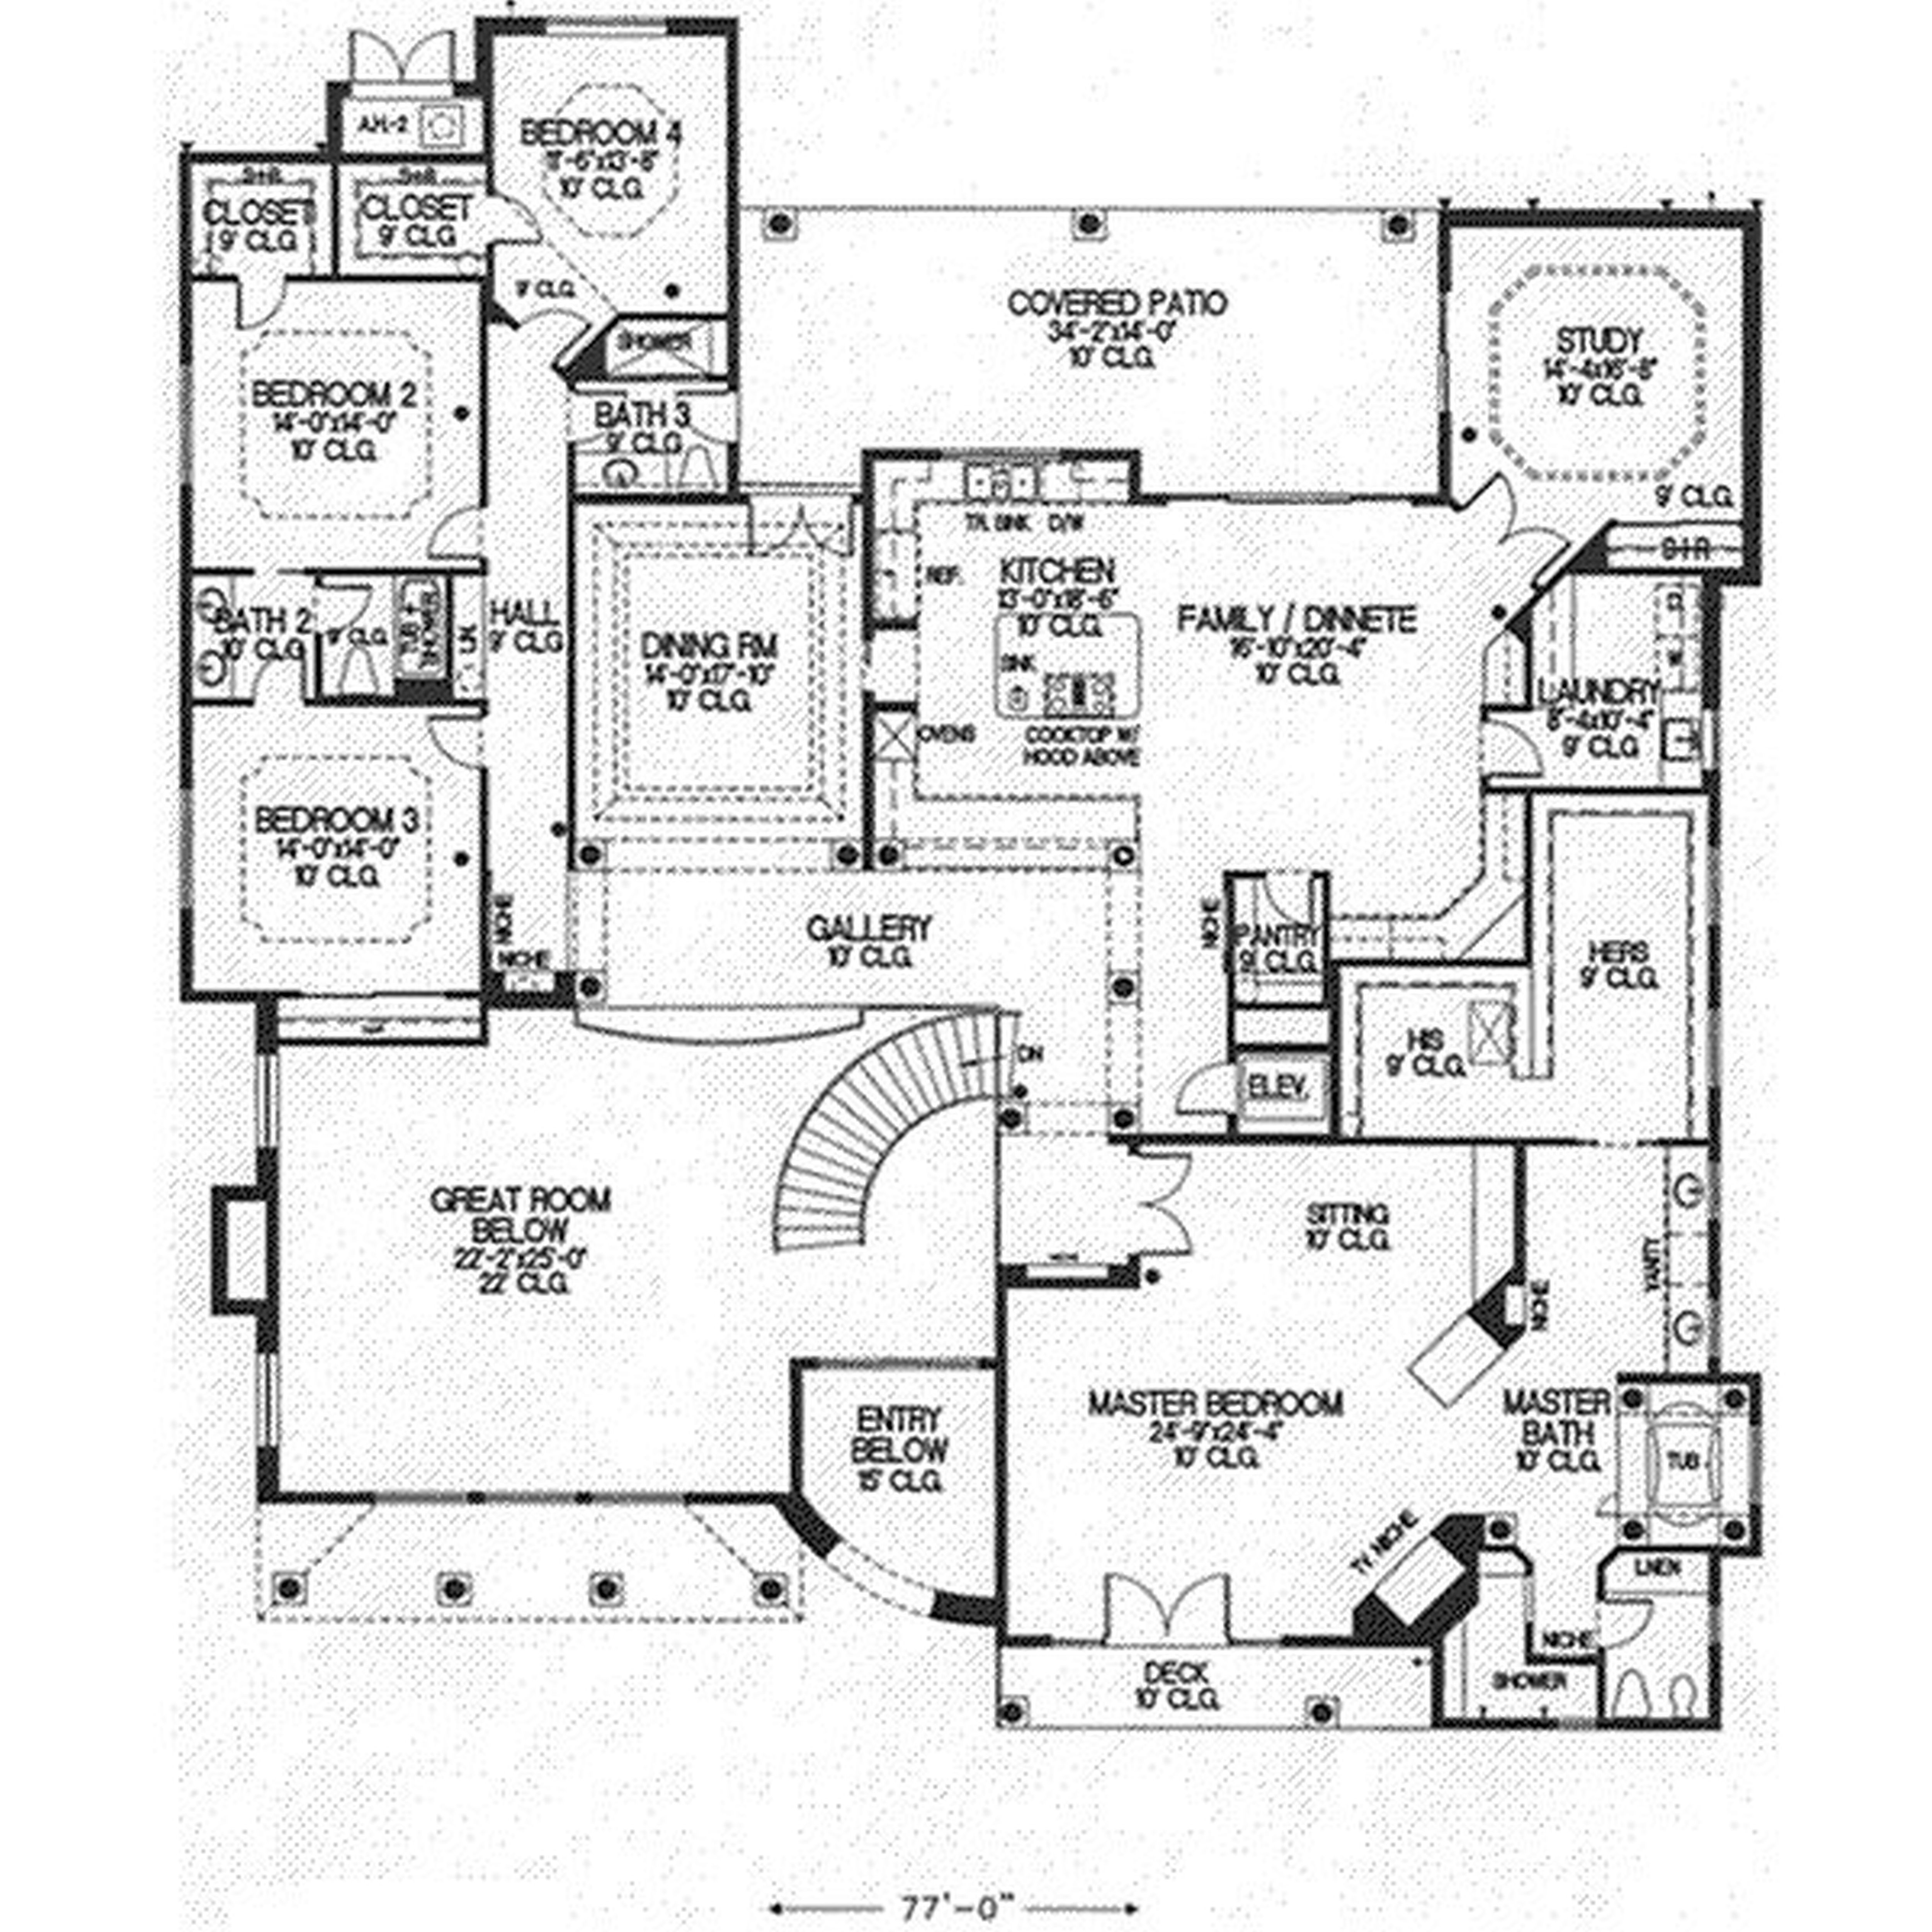 Stairs Plan Drawing at GetDrawings com | Free for personal use